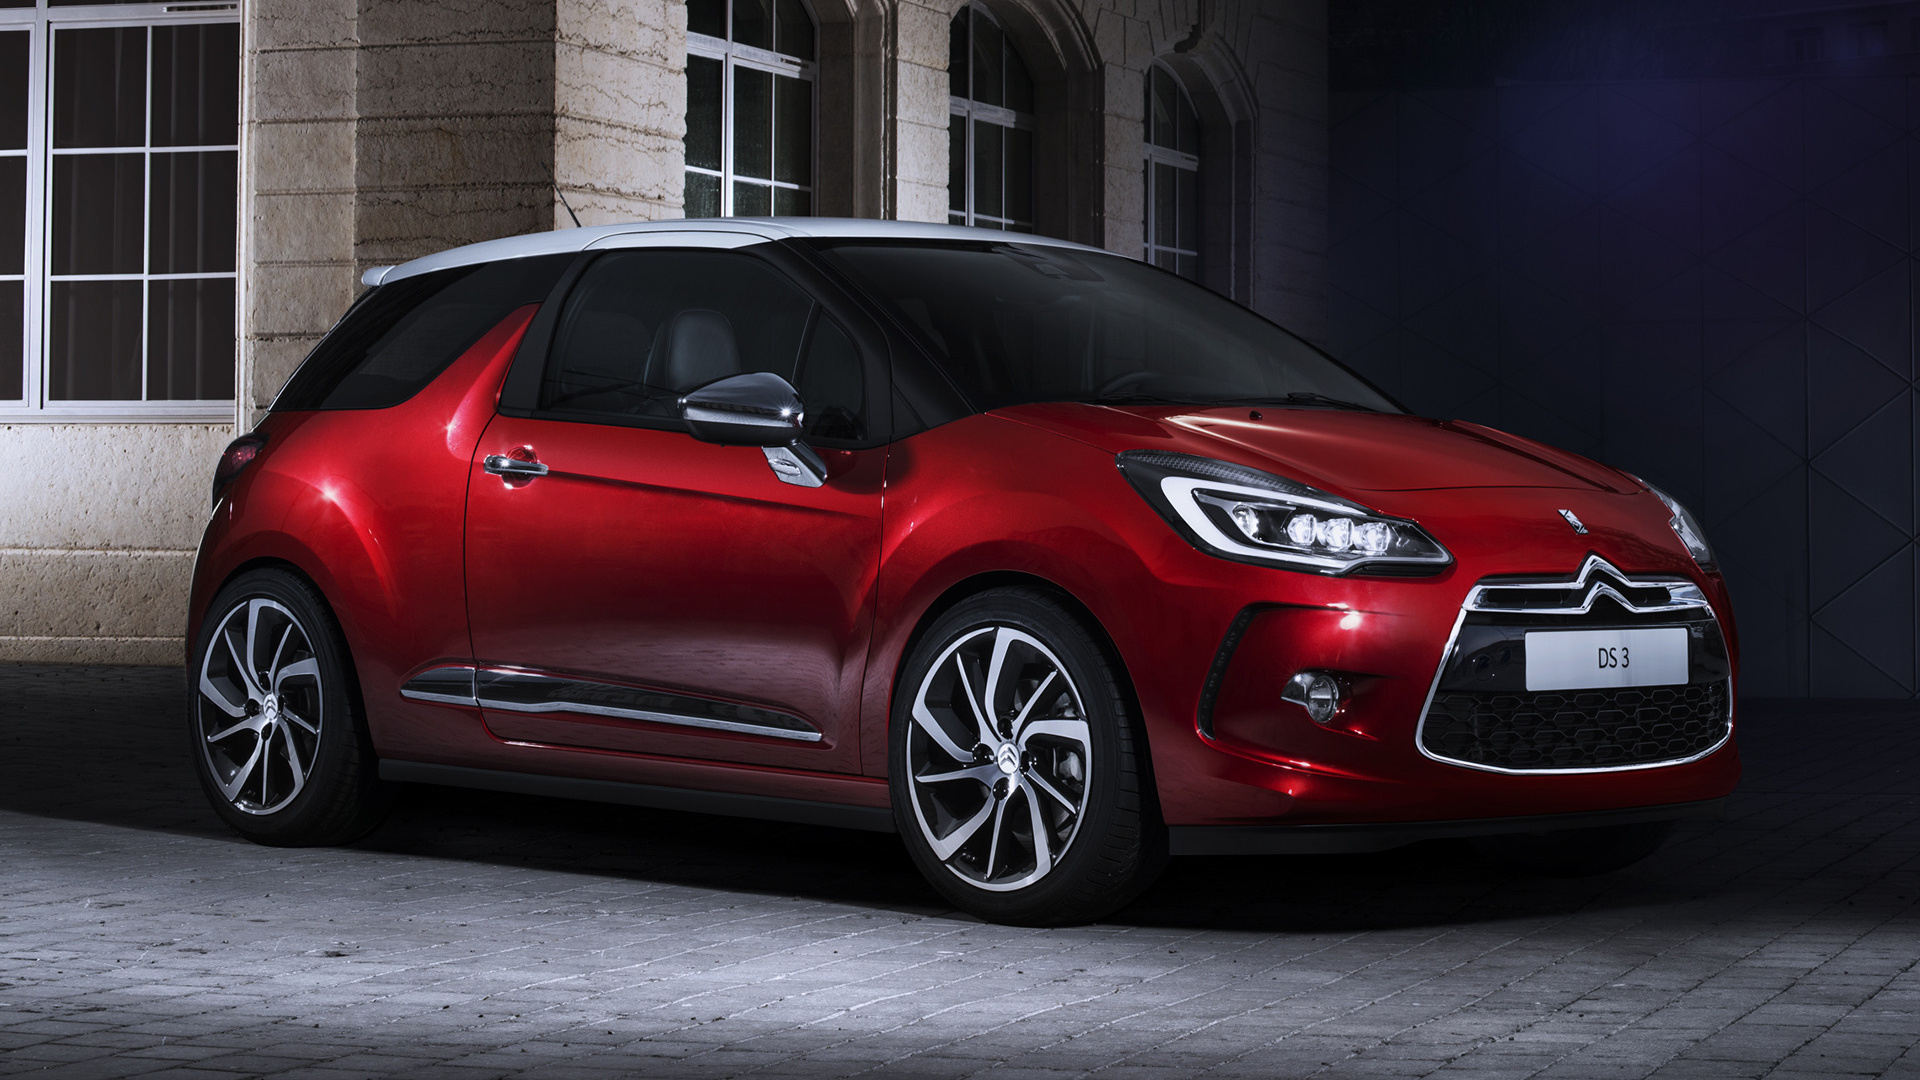 2014 Citroen Ds3 Wallpapers And Hd Images Car Pixel